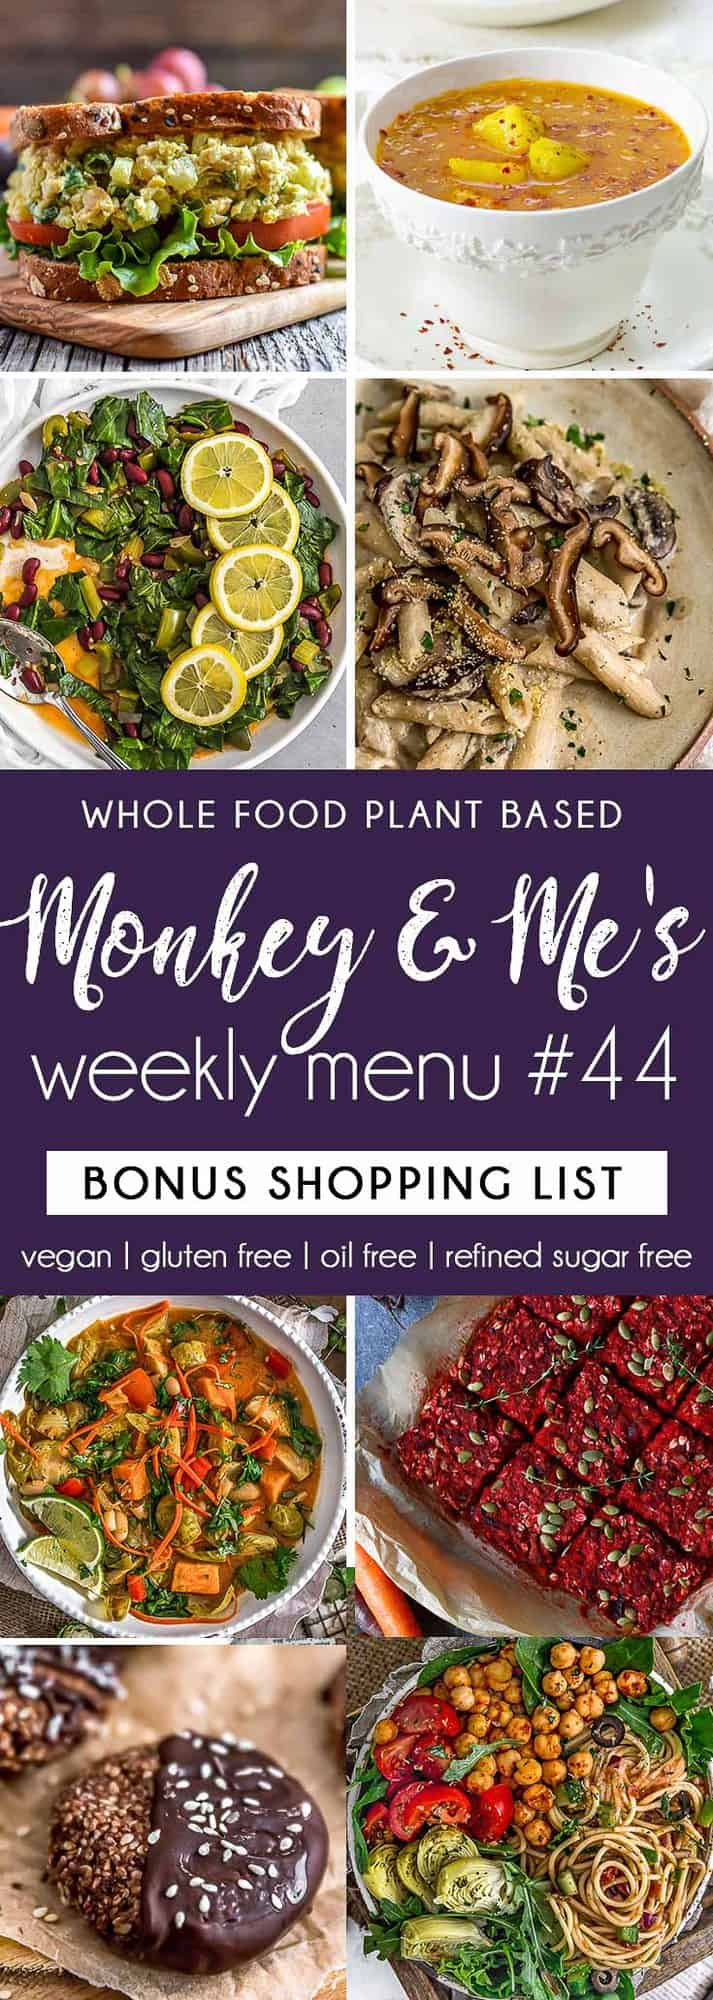 Monkey and Me's Menu 44 featuring 8 recipes